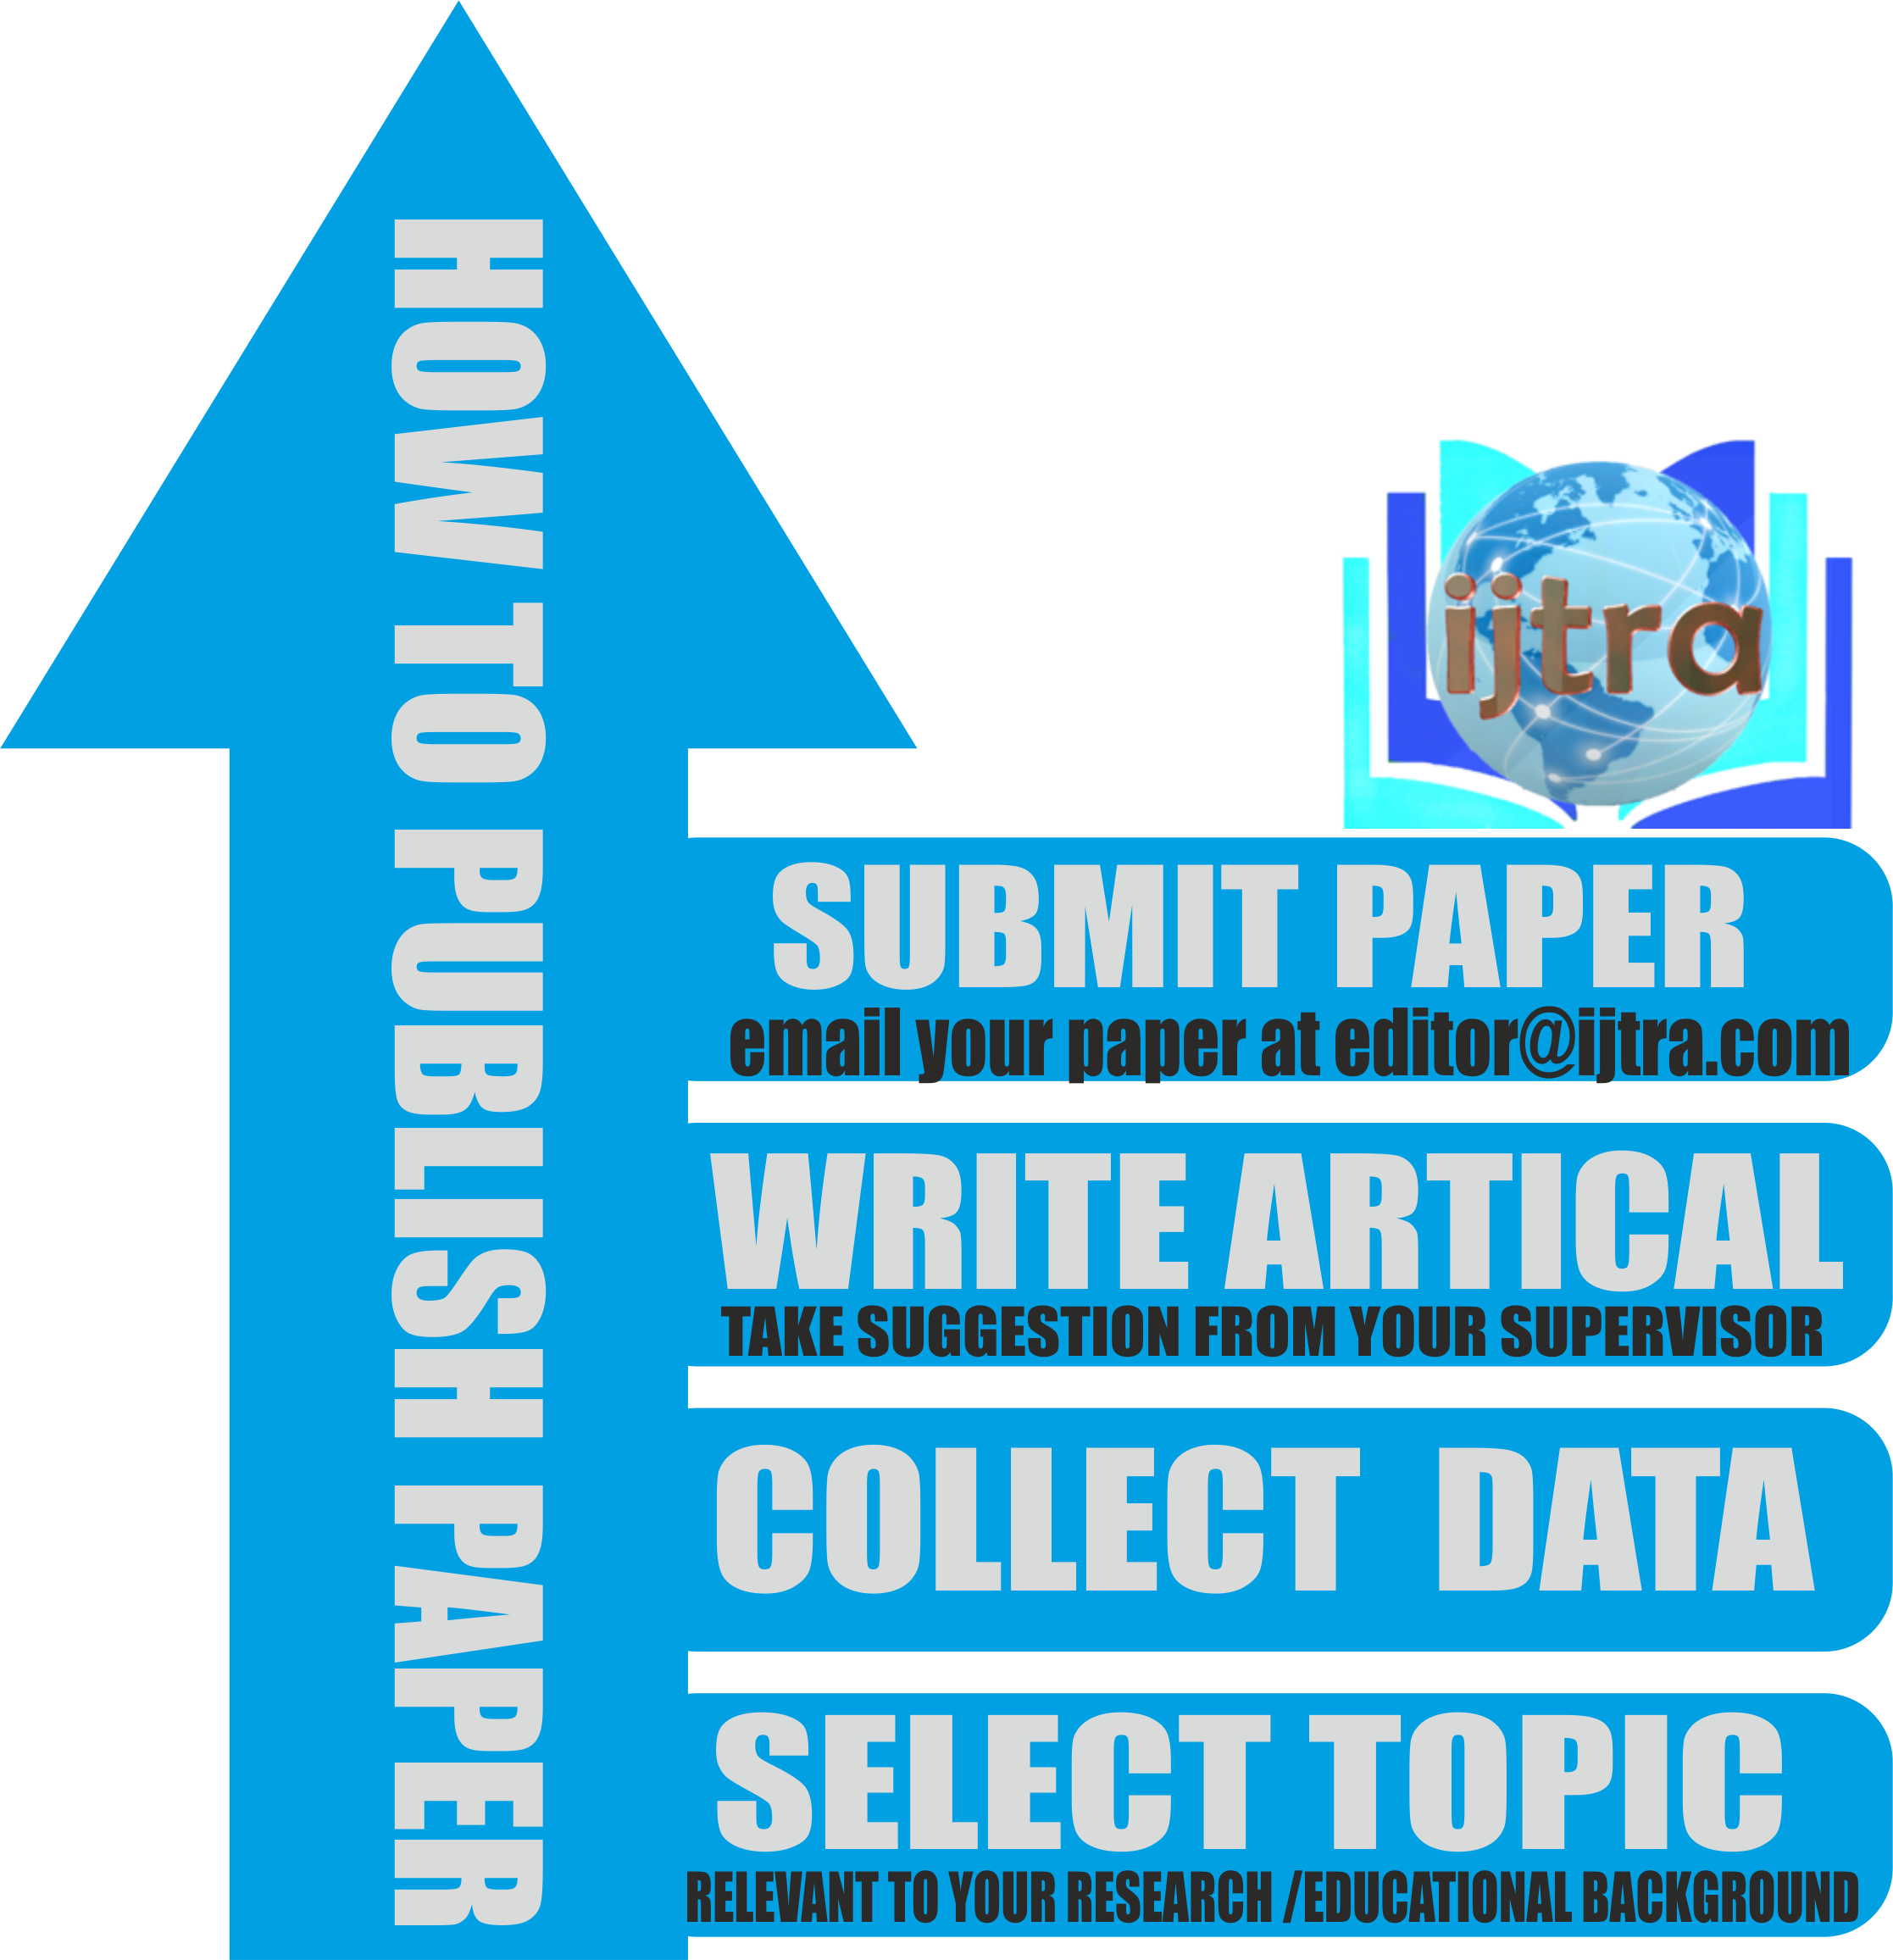 023 Ijtra Author Ins Research Paper Breathtaking Editor Free Professional Editors Software Full